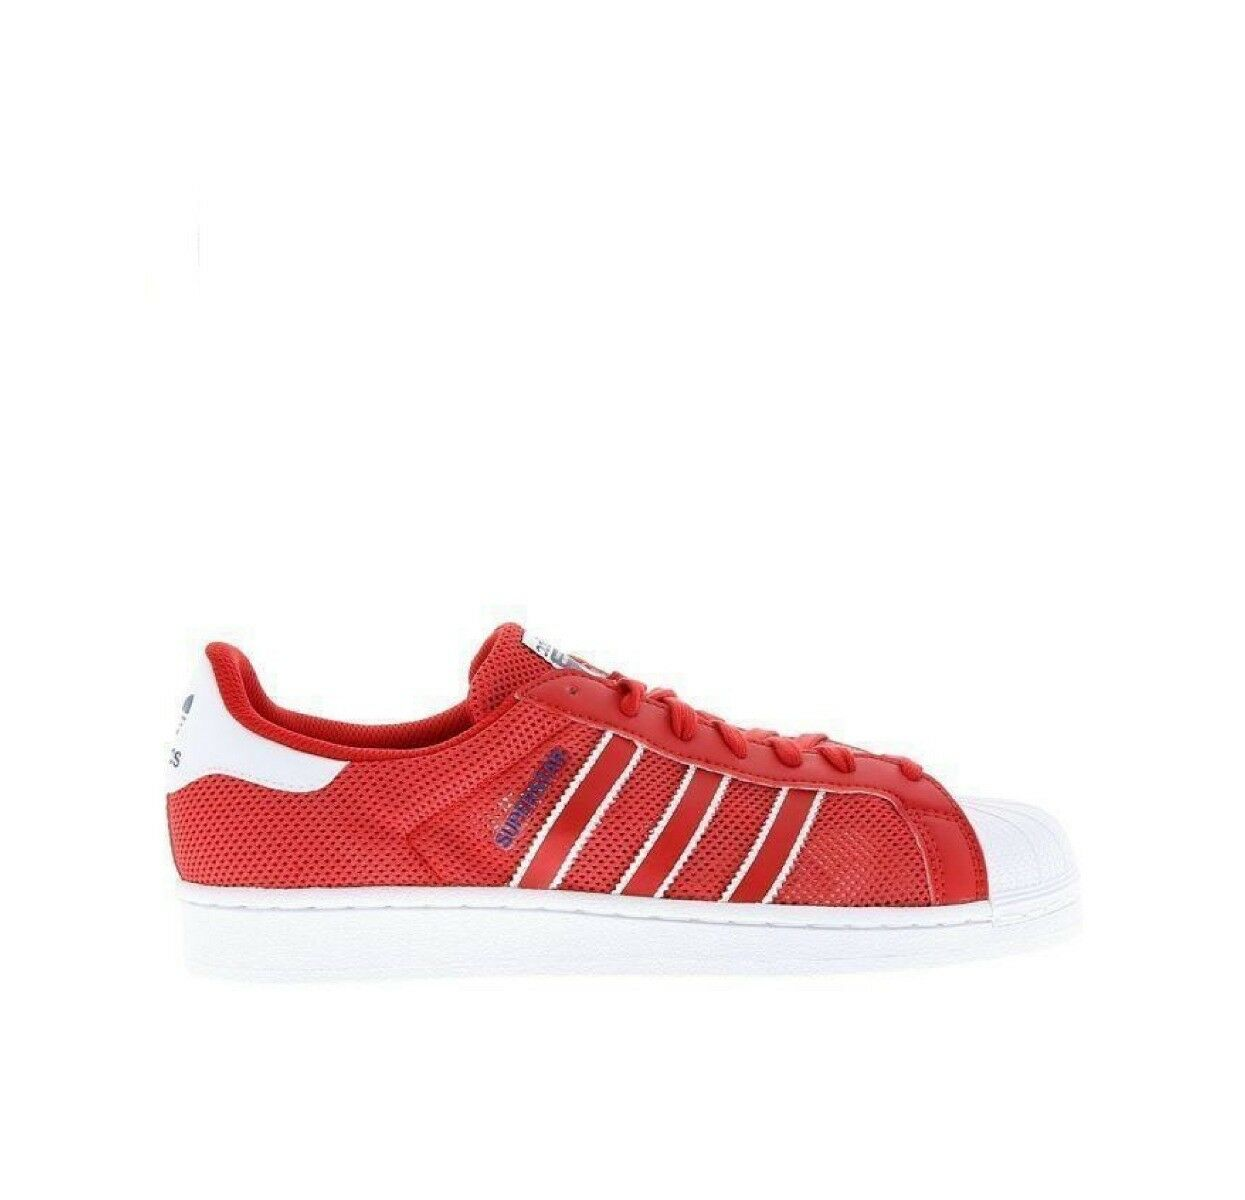 finest selection 609ec 44b09 Adidas Superstar Trainer Mens shoes Size 7 7.5 9.5 Red Trainer RRP - New